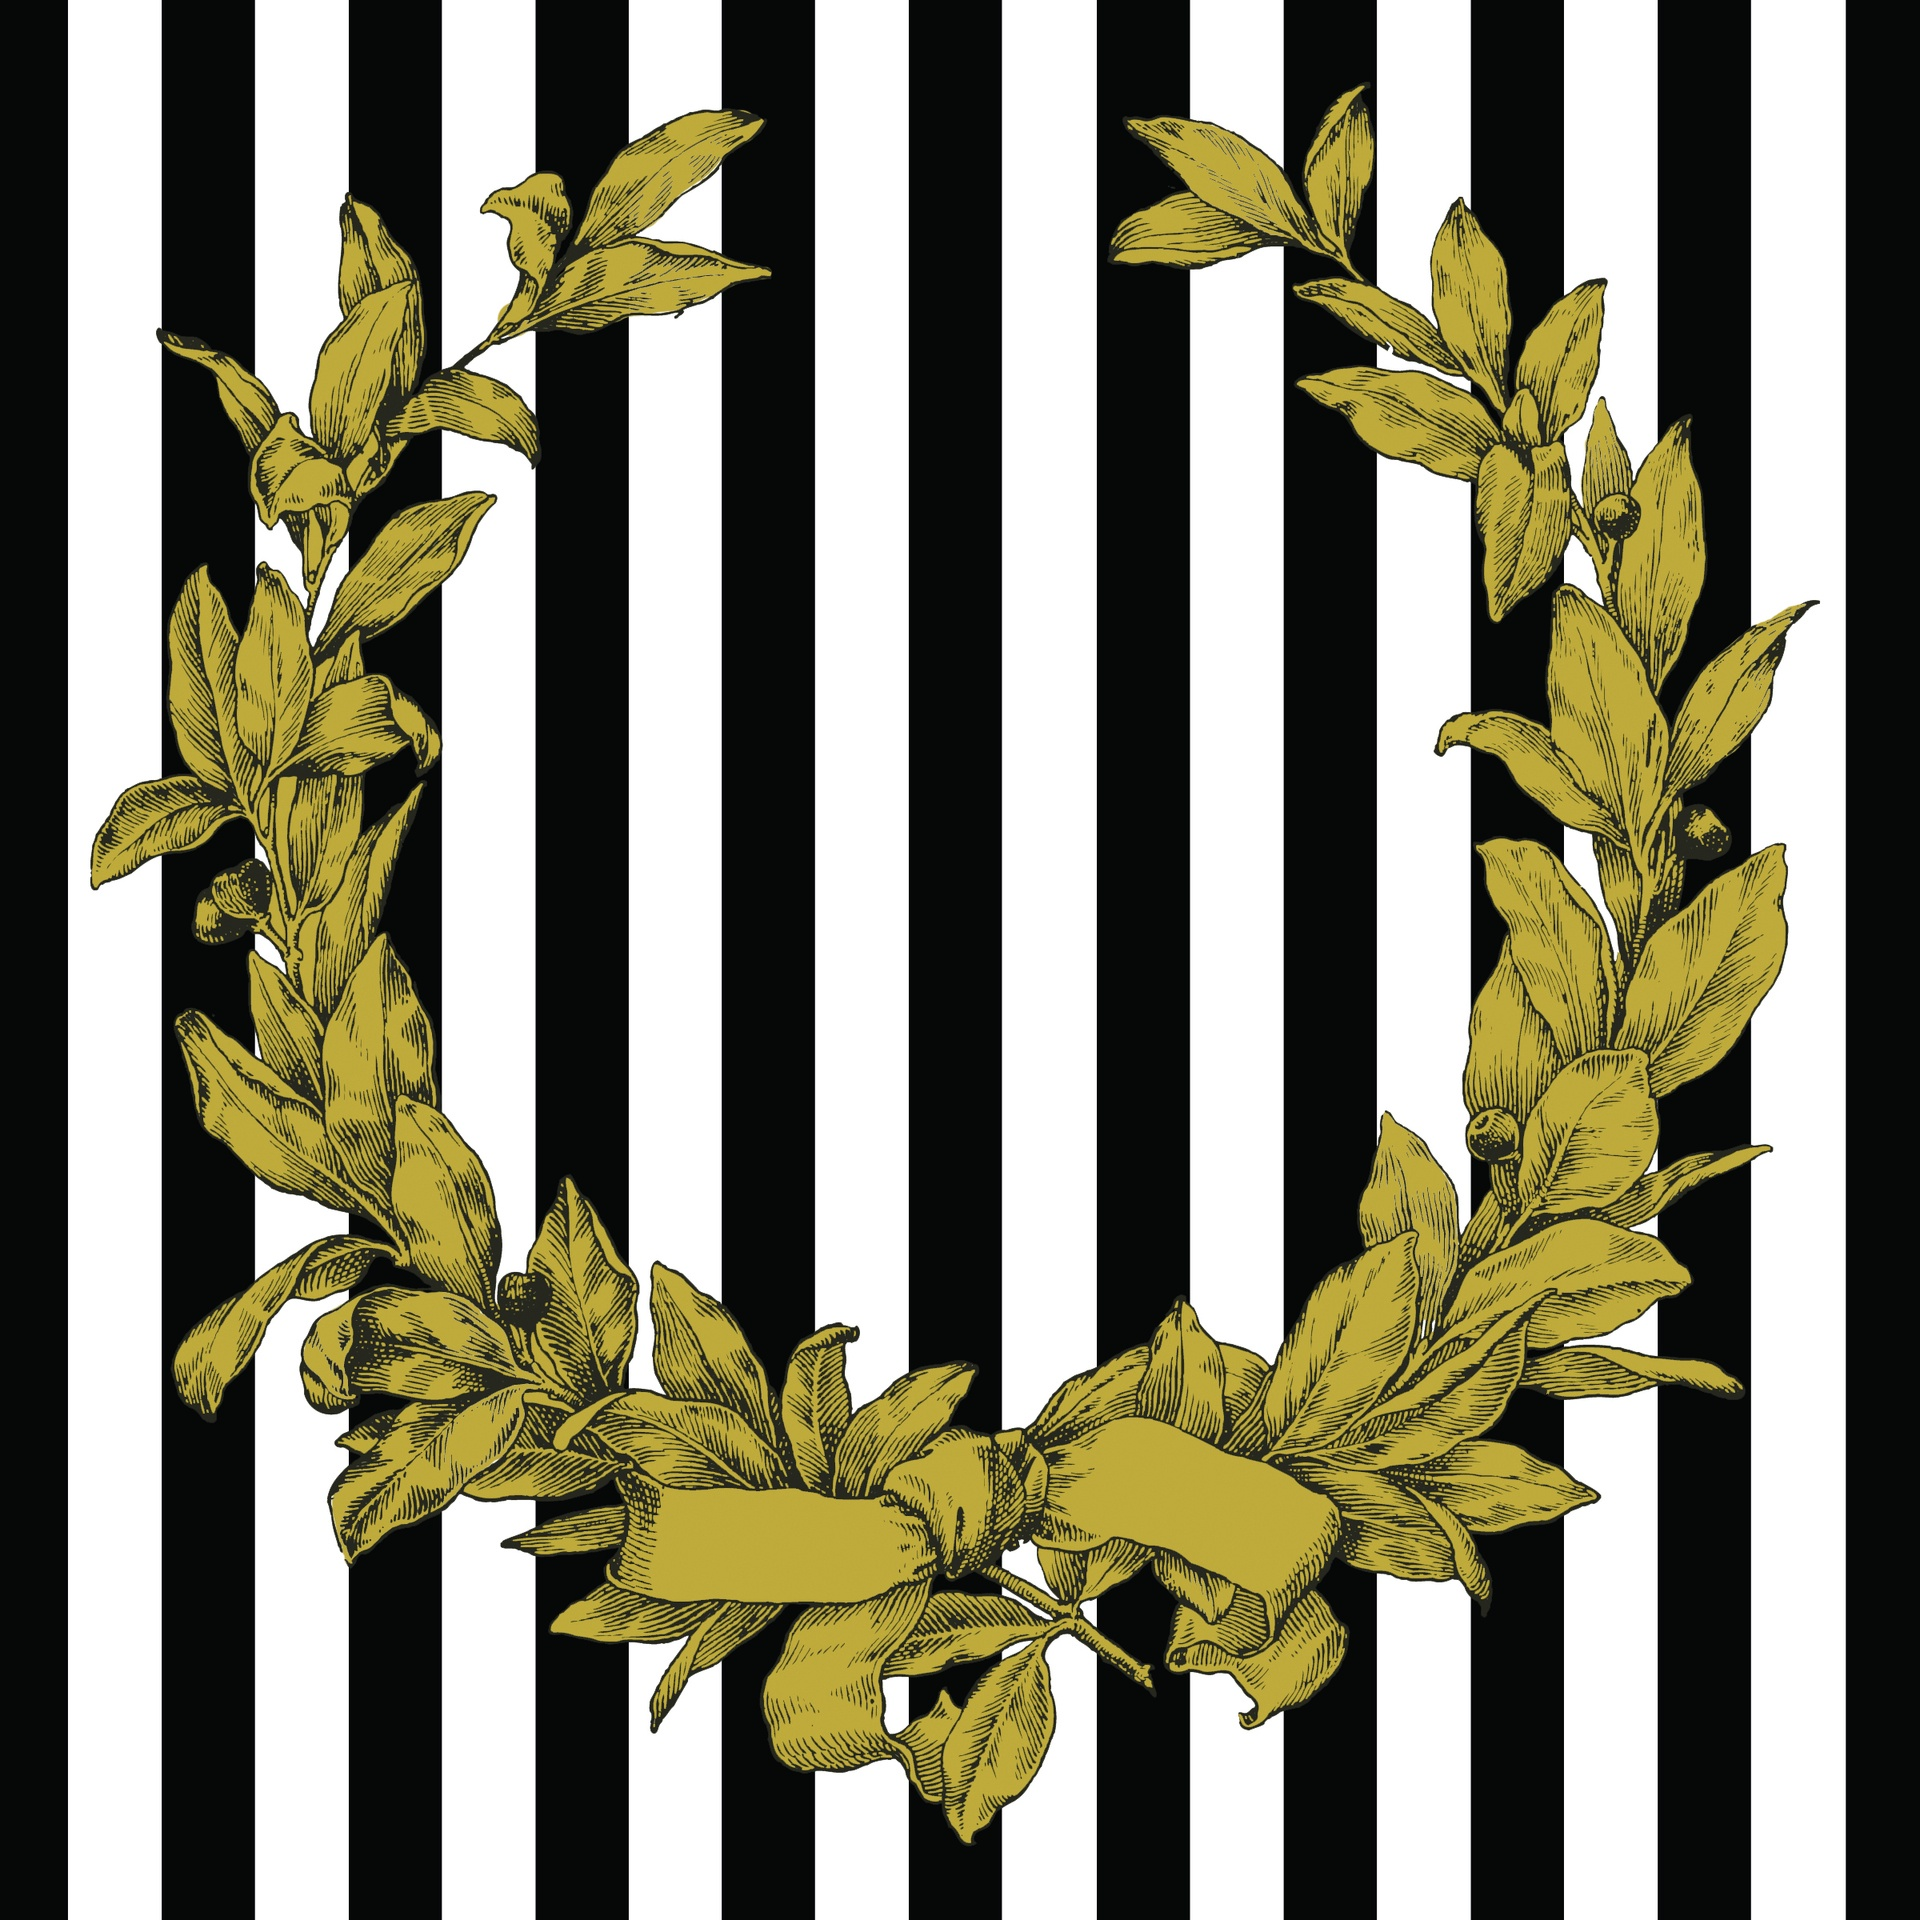 Paper Placemats - Gold Wreath (Sq) 348mm x 348mm